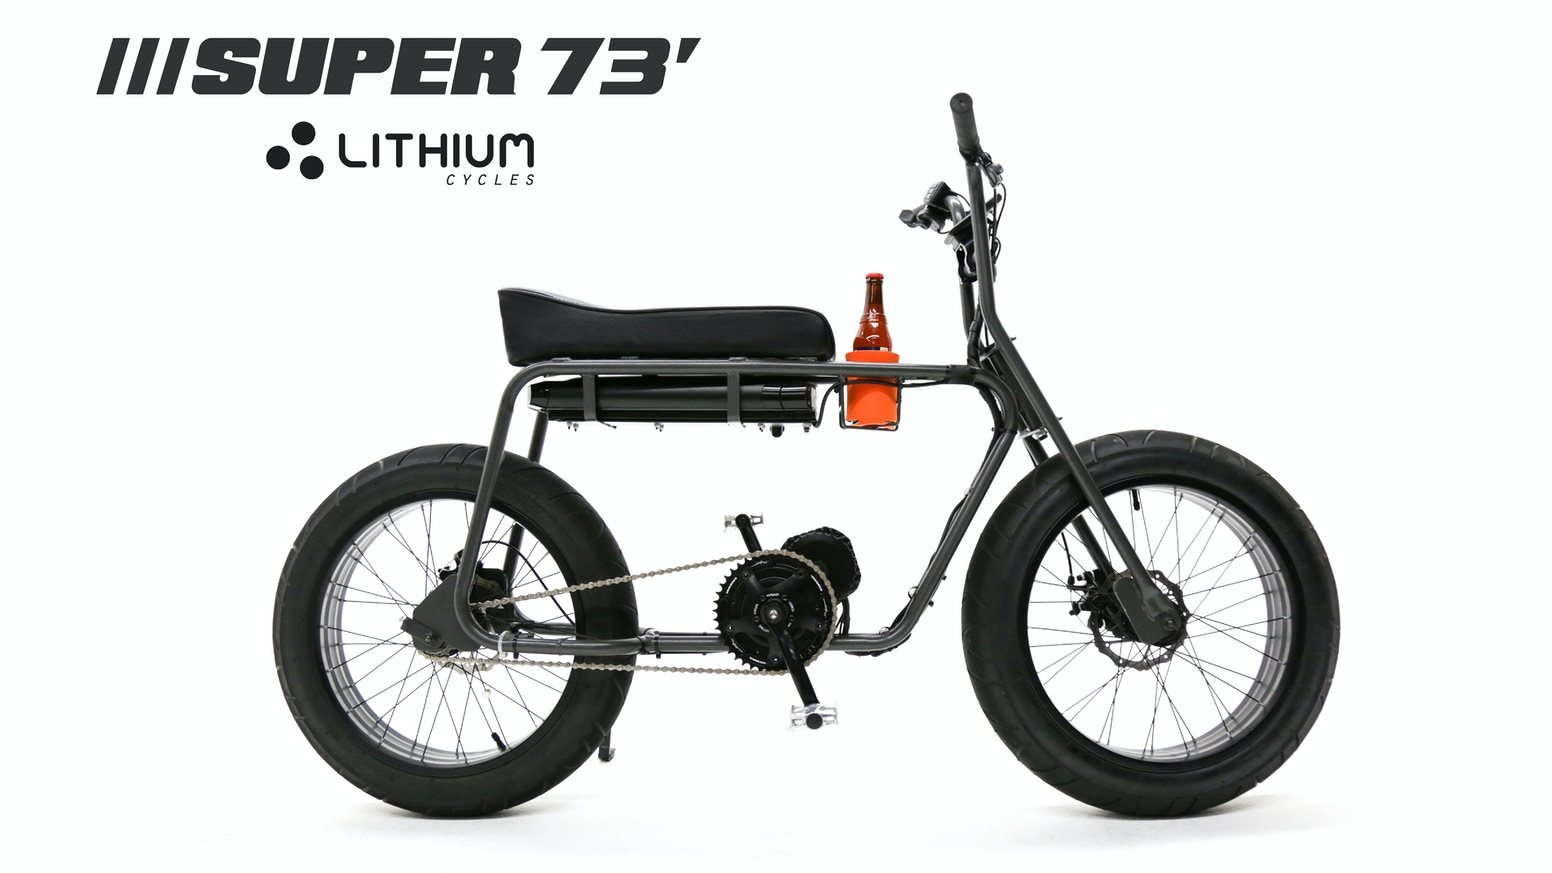 A powerful electric bike full of features. Go anywhere with 1000 watts of power, Californian design, and even a cup holder.